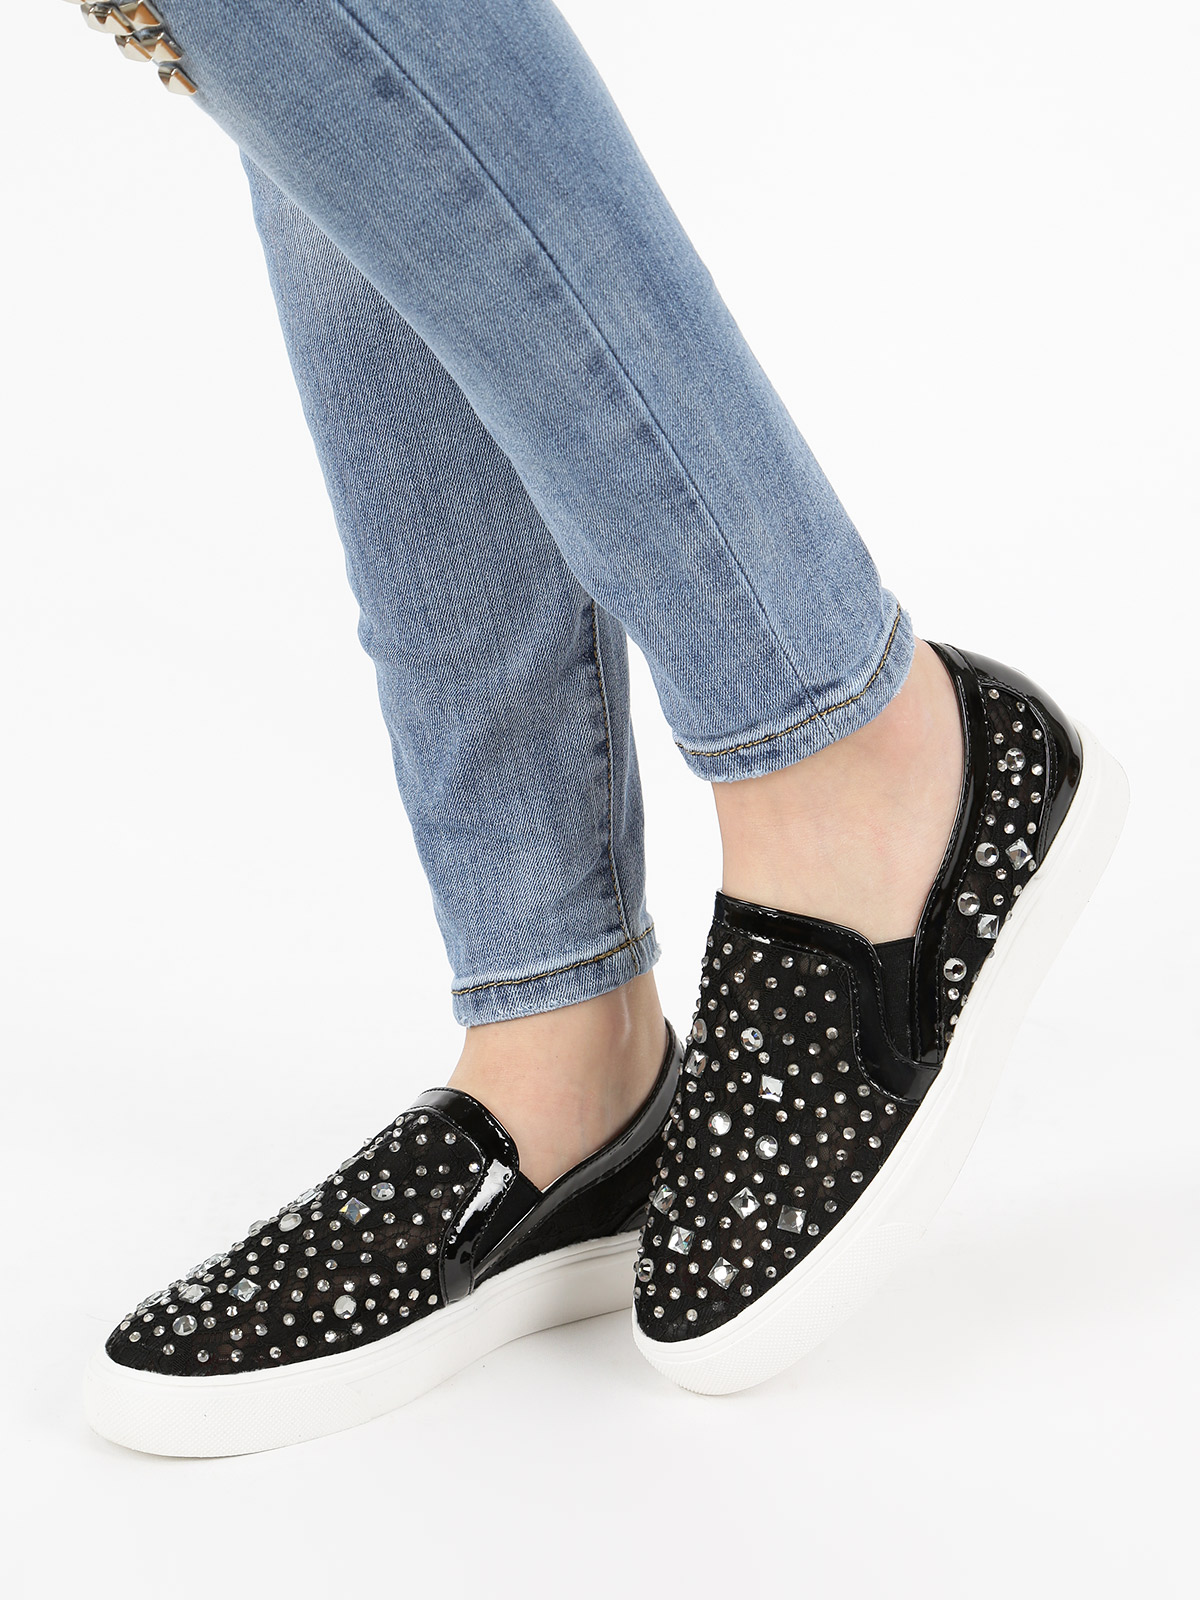 Sneakers With Rhinestone